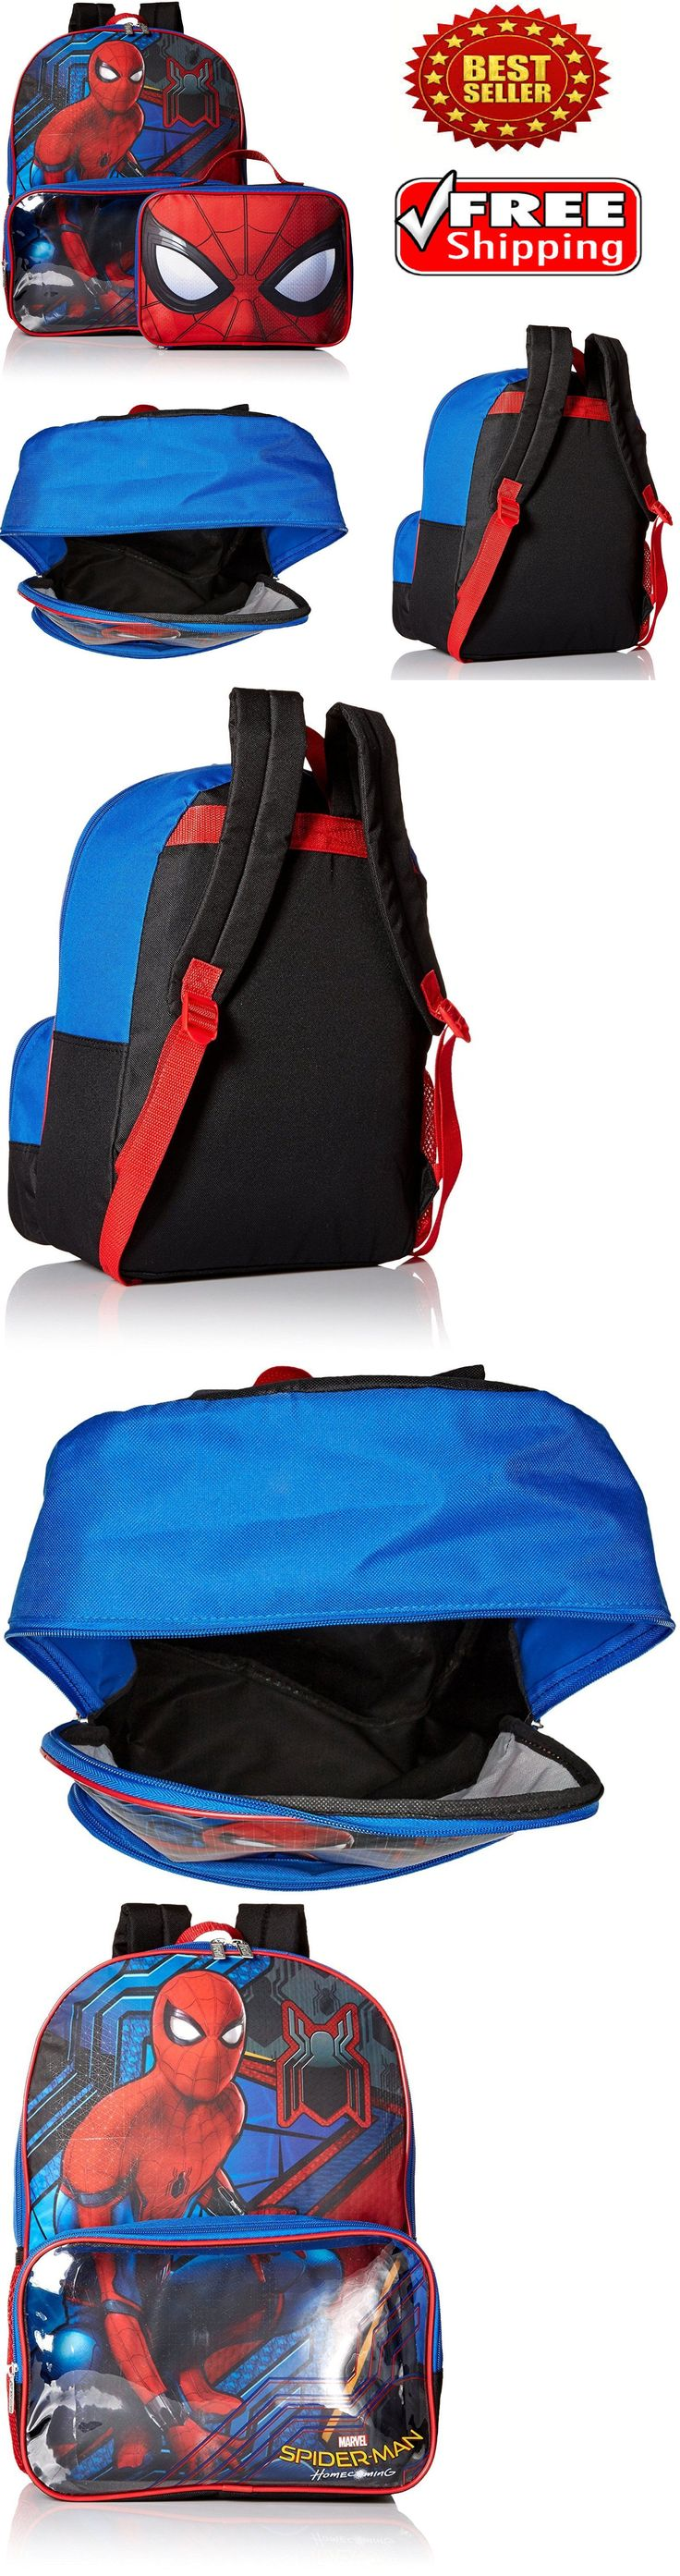 853 best backpacks and bags images on pinterest